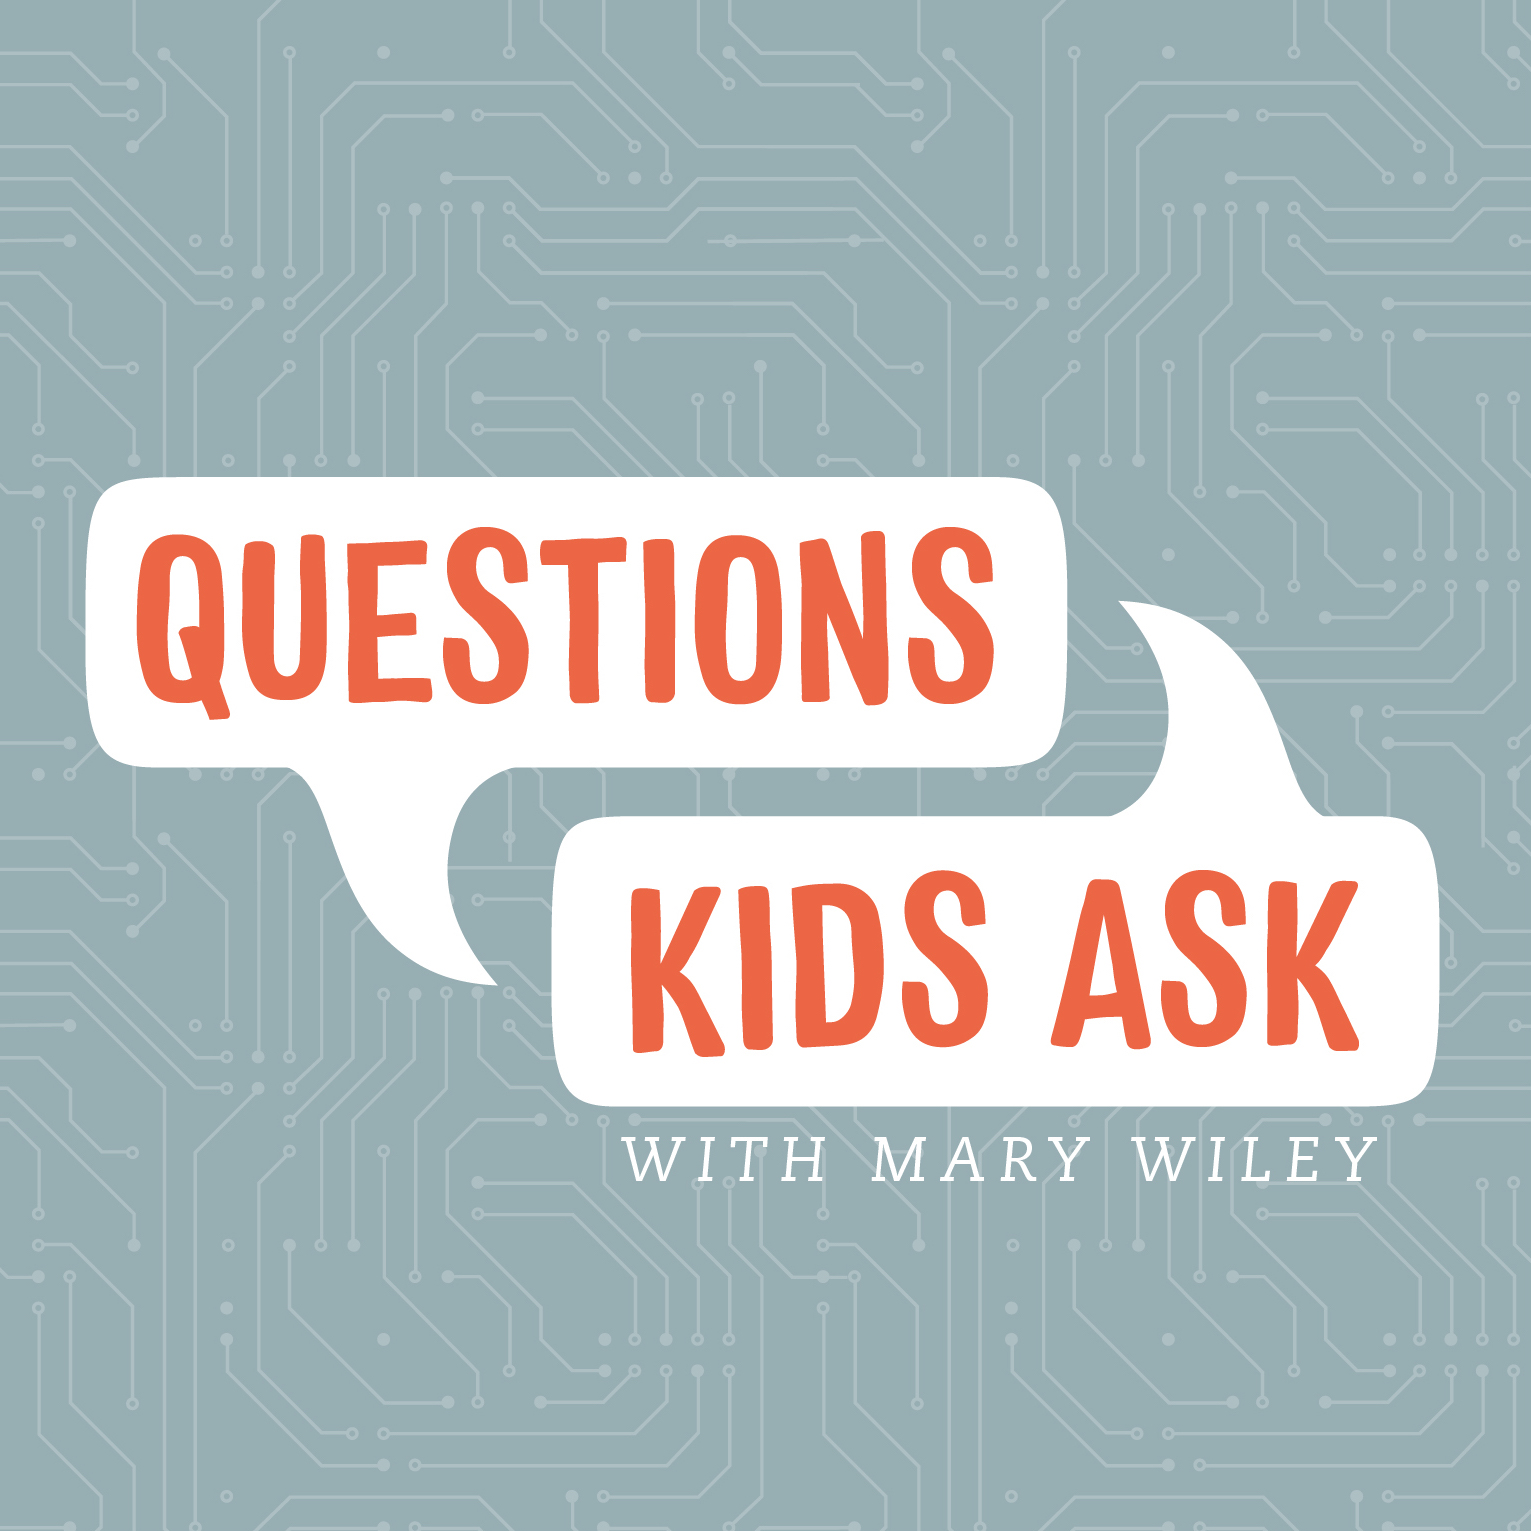 Why do bad things happen? Does God really care?How do we know the Bible is true? - Kids ask tough questions, and being the parent who has to answer those questions is even tougher.In each episode, you'll get to eavesdrop on a conversation about parenting and raising kids who know what they believe and why they believe it.